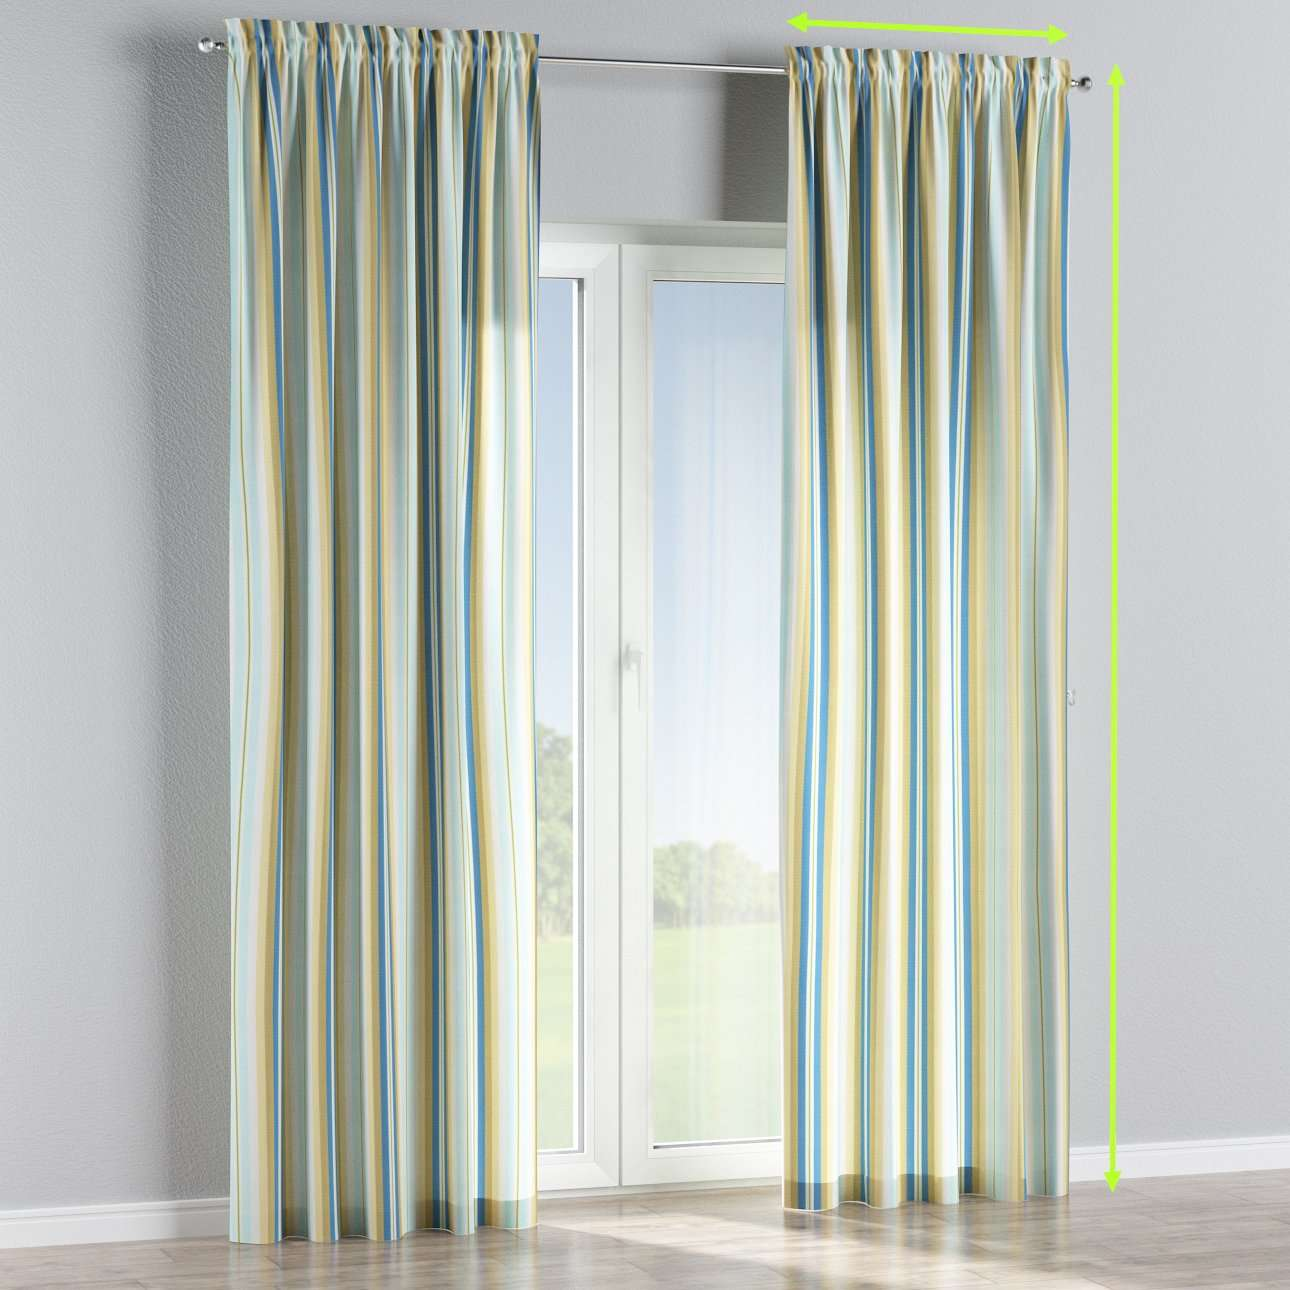 Slot and frill curtains in collection Mirella, fabric: 141-17